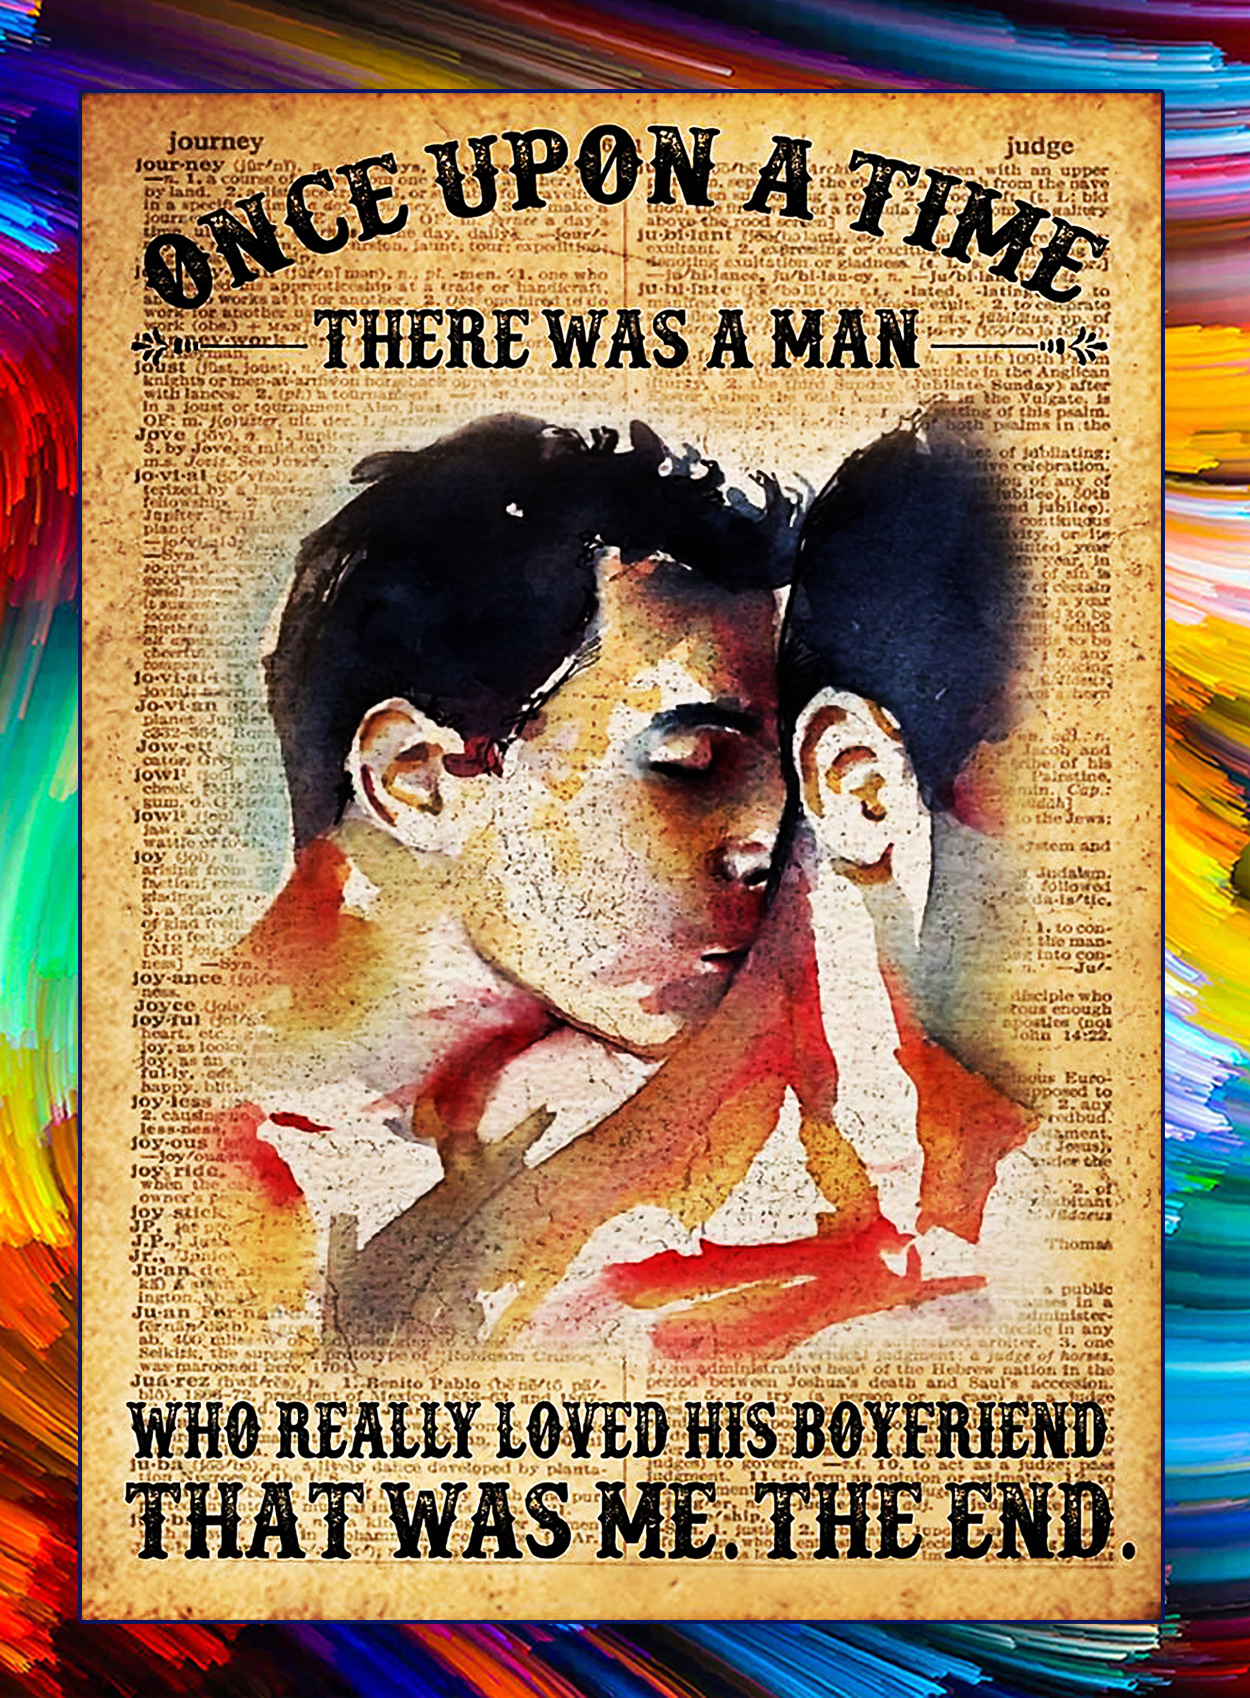 There was a man who really loved his boyfriend lgbt pride poster - A3